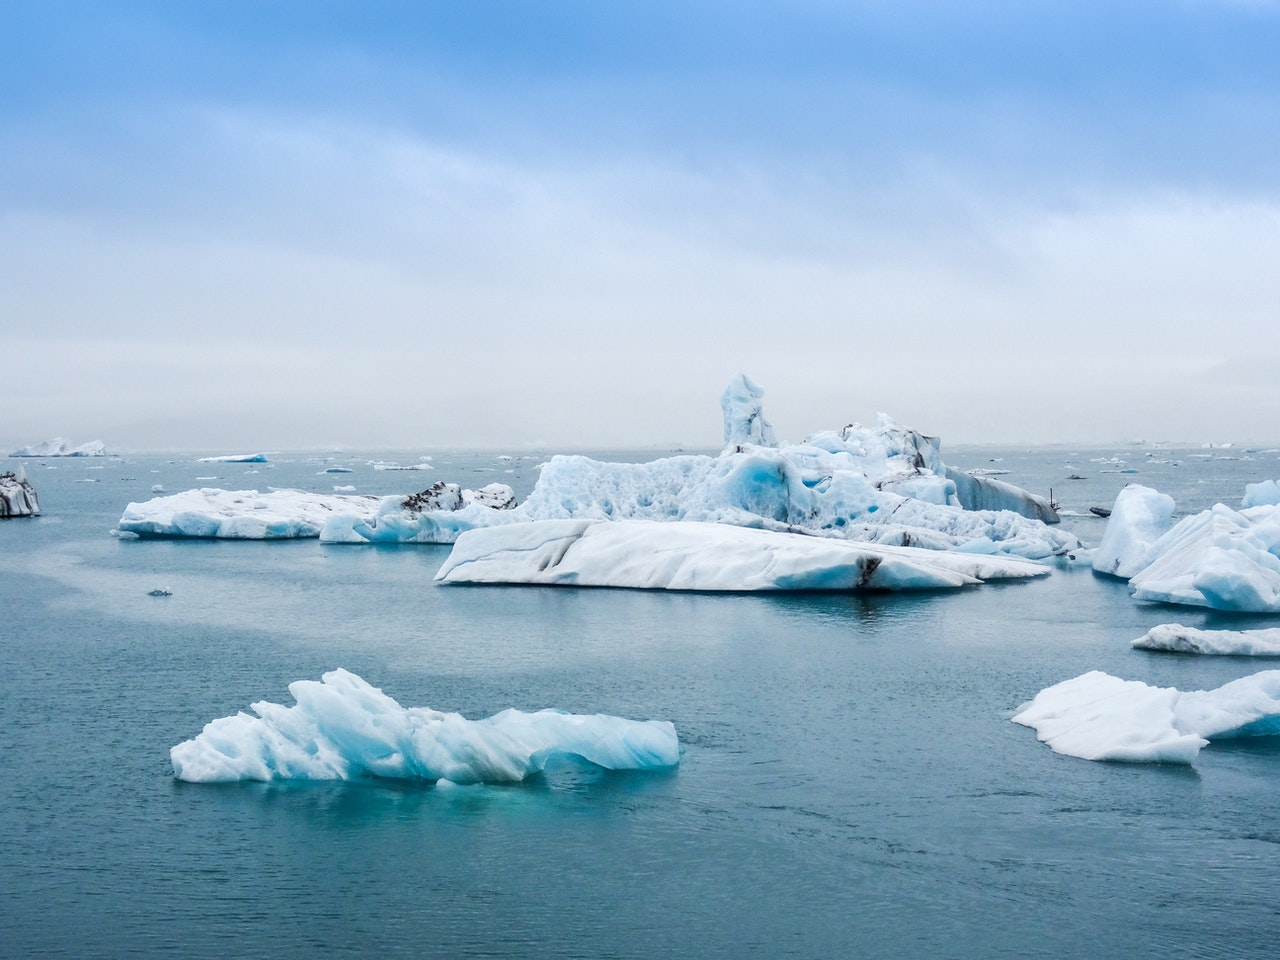 2% of the worlds water is frozen in glaciers and ice caps